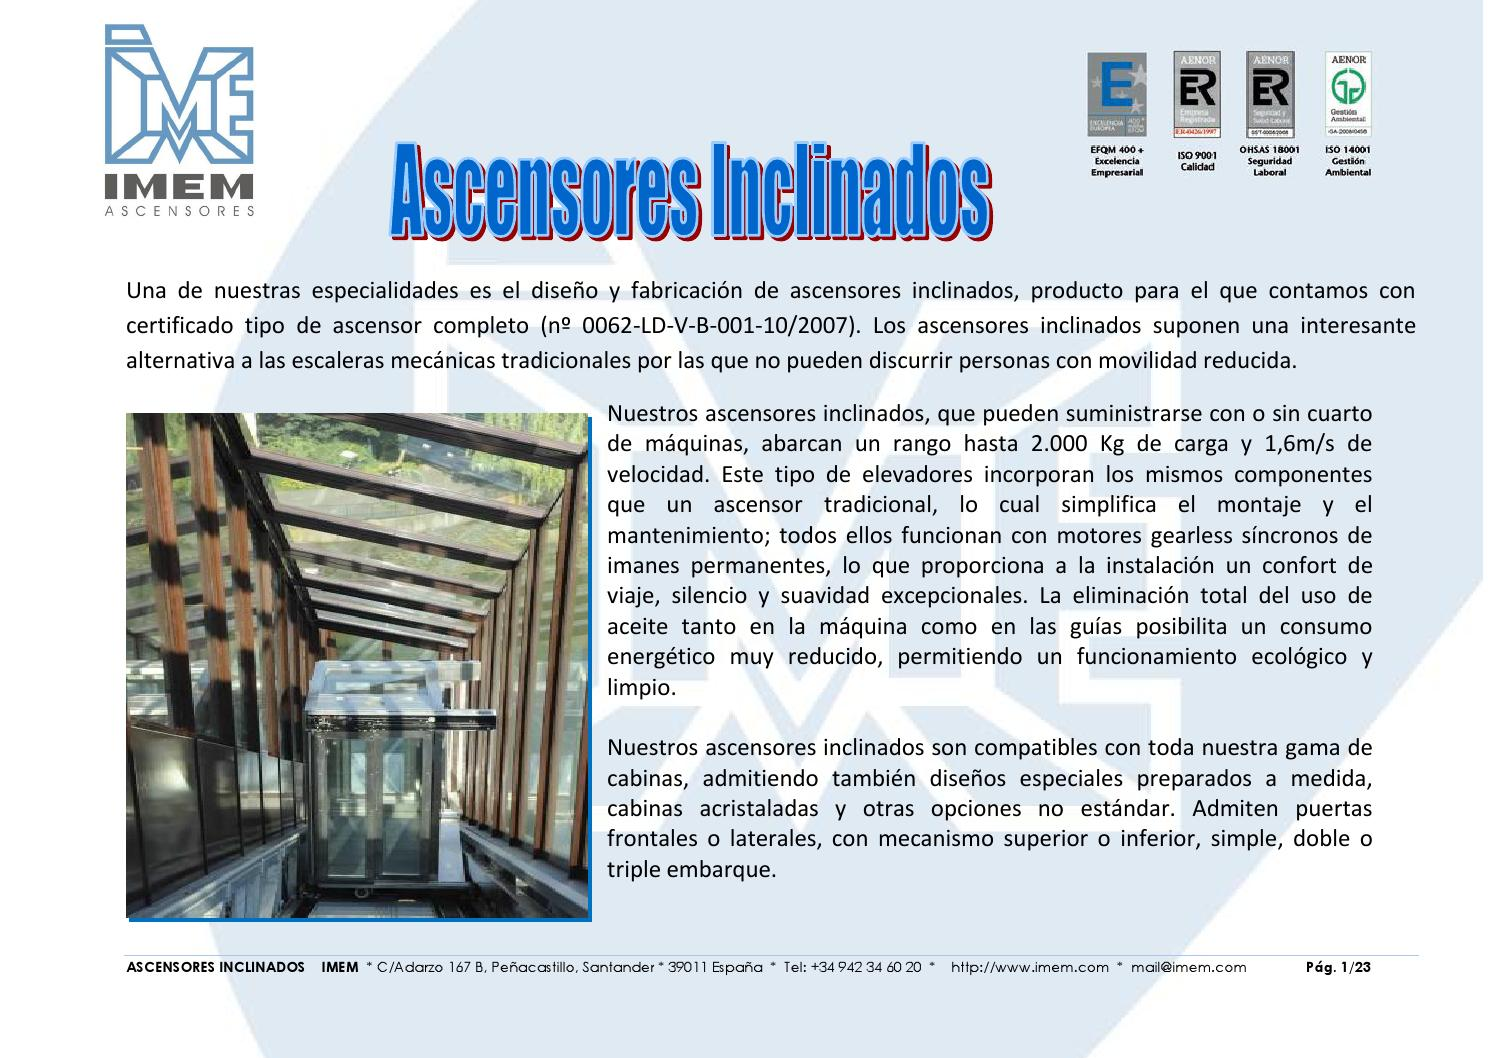 Ascensores inclinados imem by marian issuu for Ascensores unifamiliares sin mantenimiento